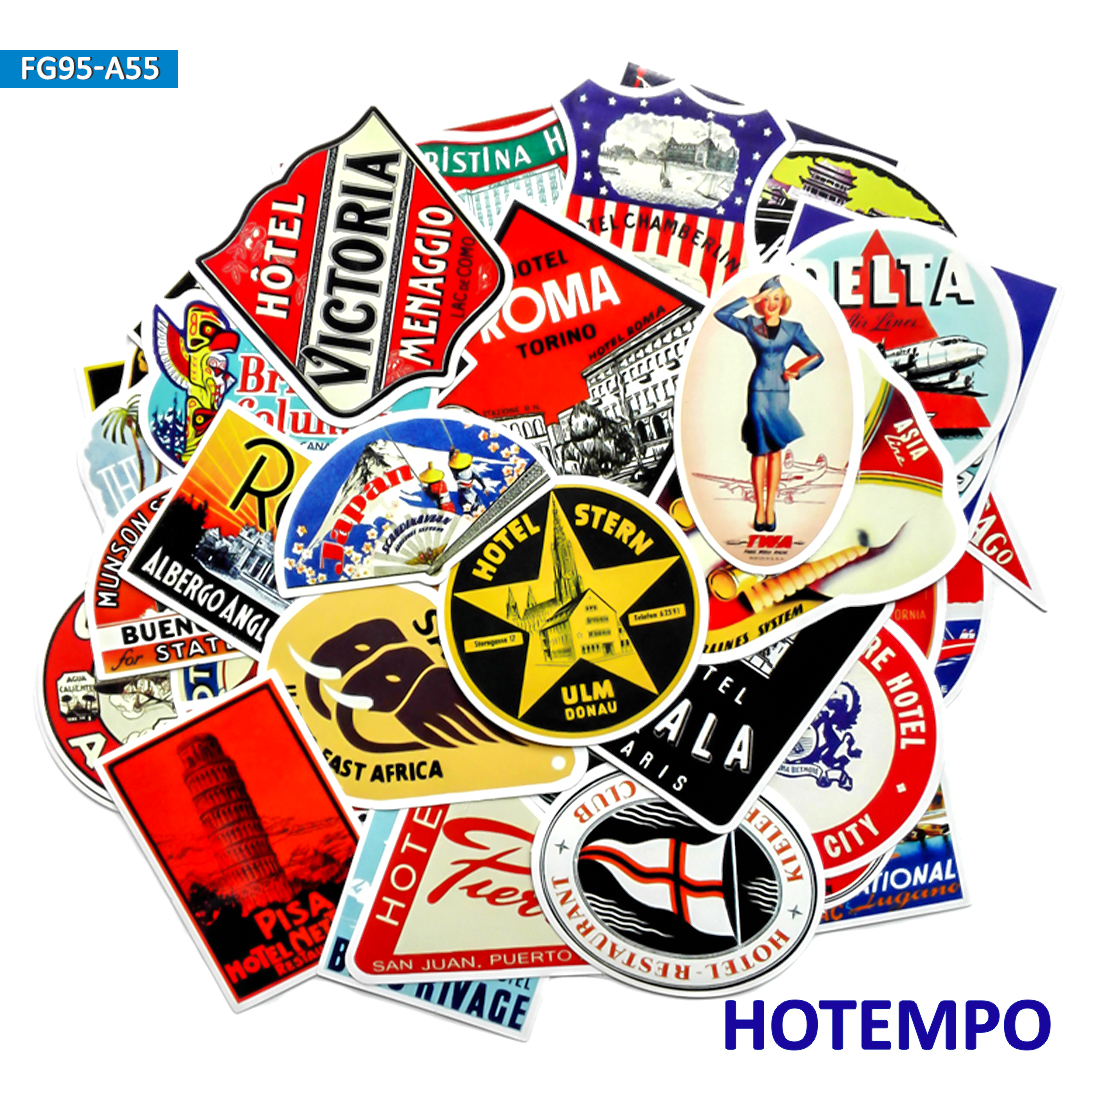 55/50pcs Retro Art Style Vintage Hotel Travel Stickers For Mobile Phone Laptop Luggage Guitar Case Skateboard Bike Car Stickers